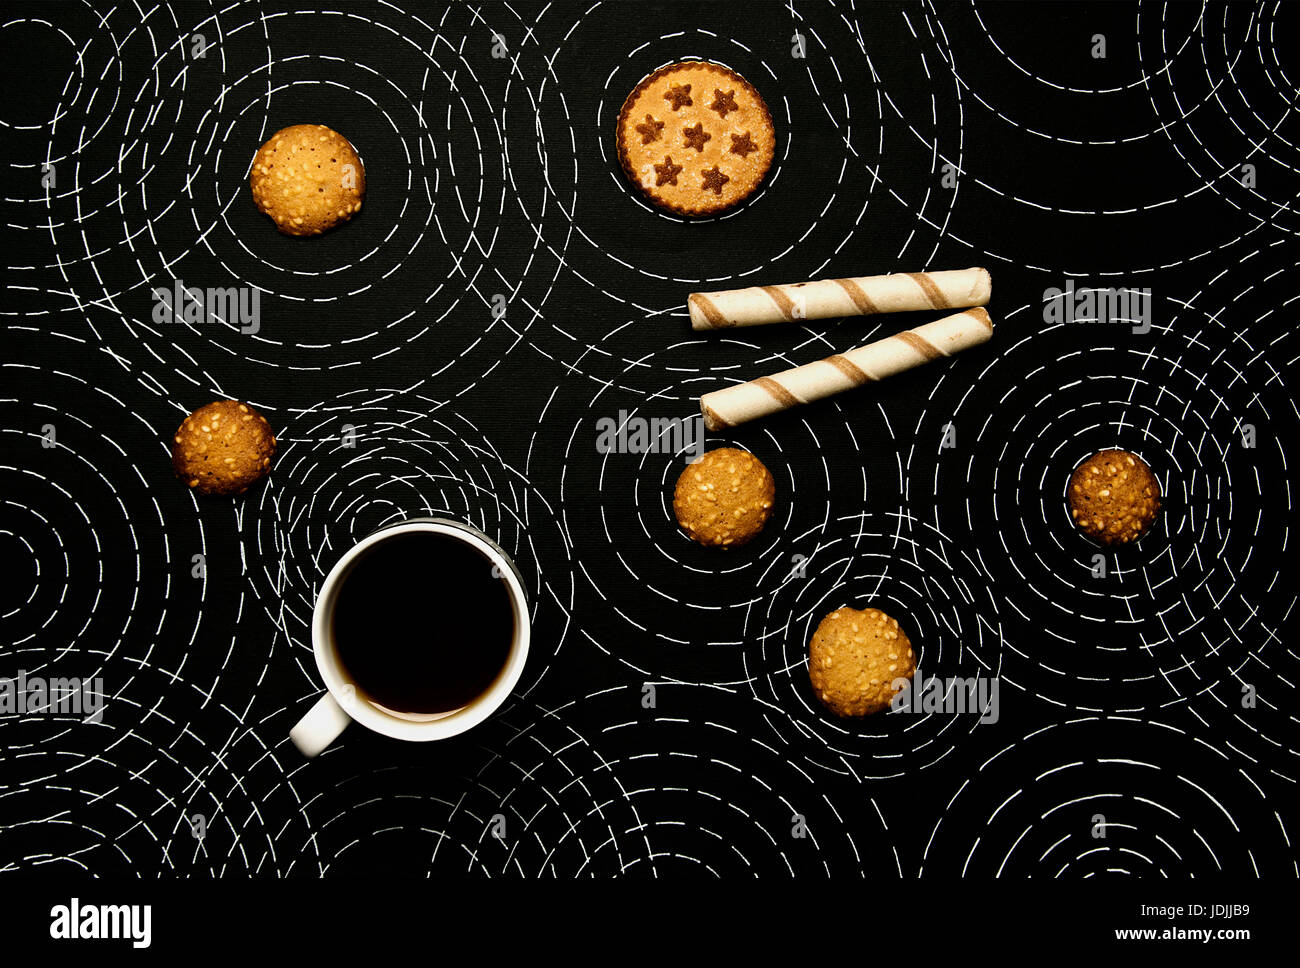 Coffee, sweet biscuits on a black background with concentric circles - Stock Image